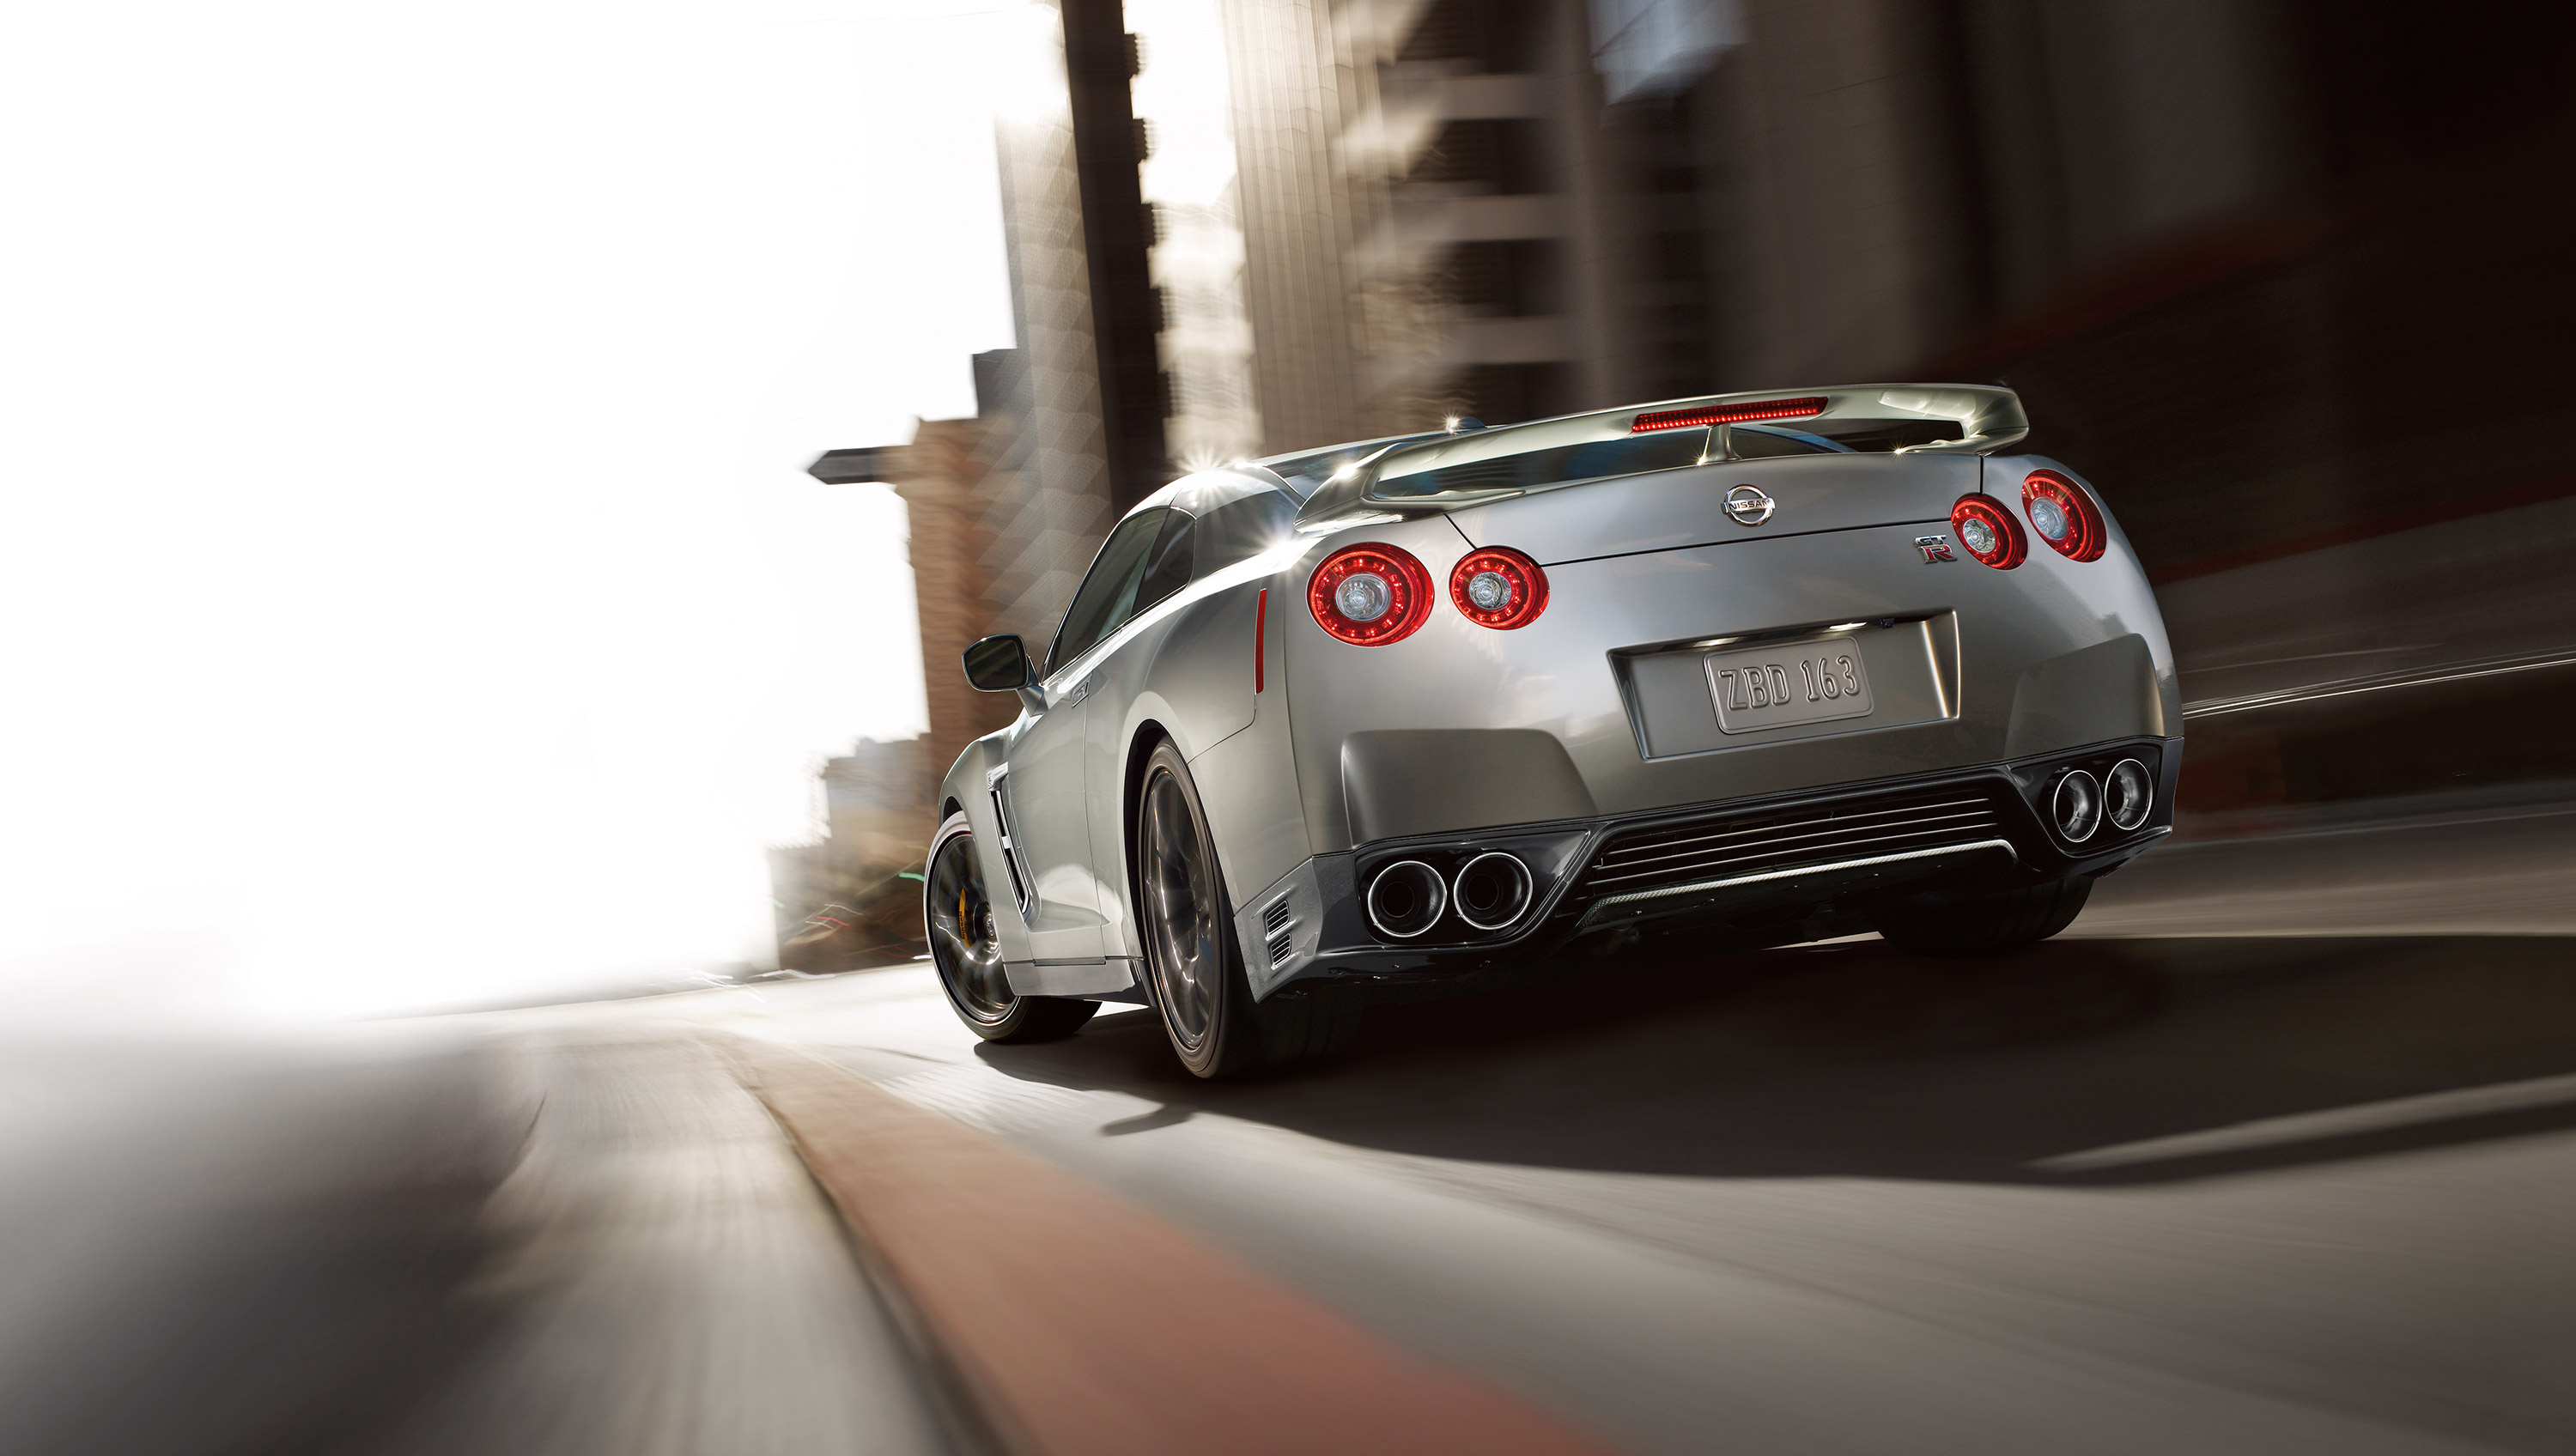 New Nissan GT-R Exterior main image